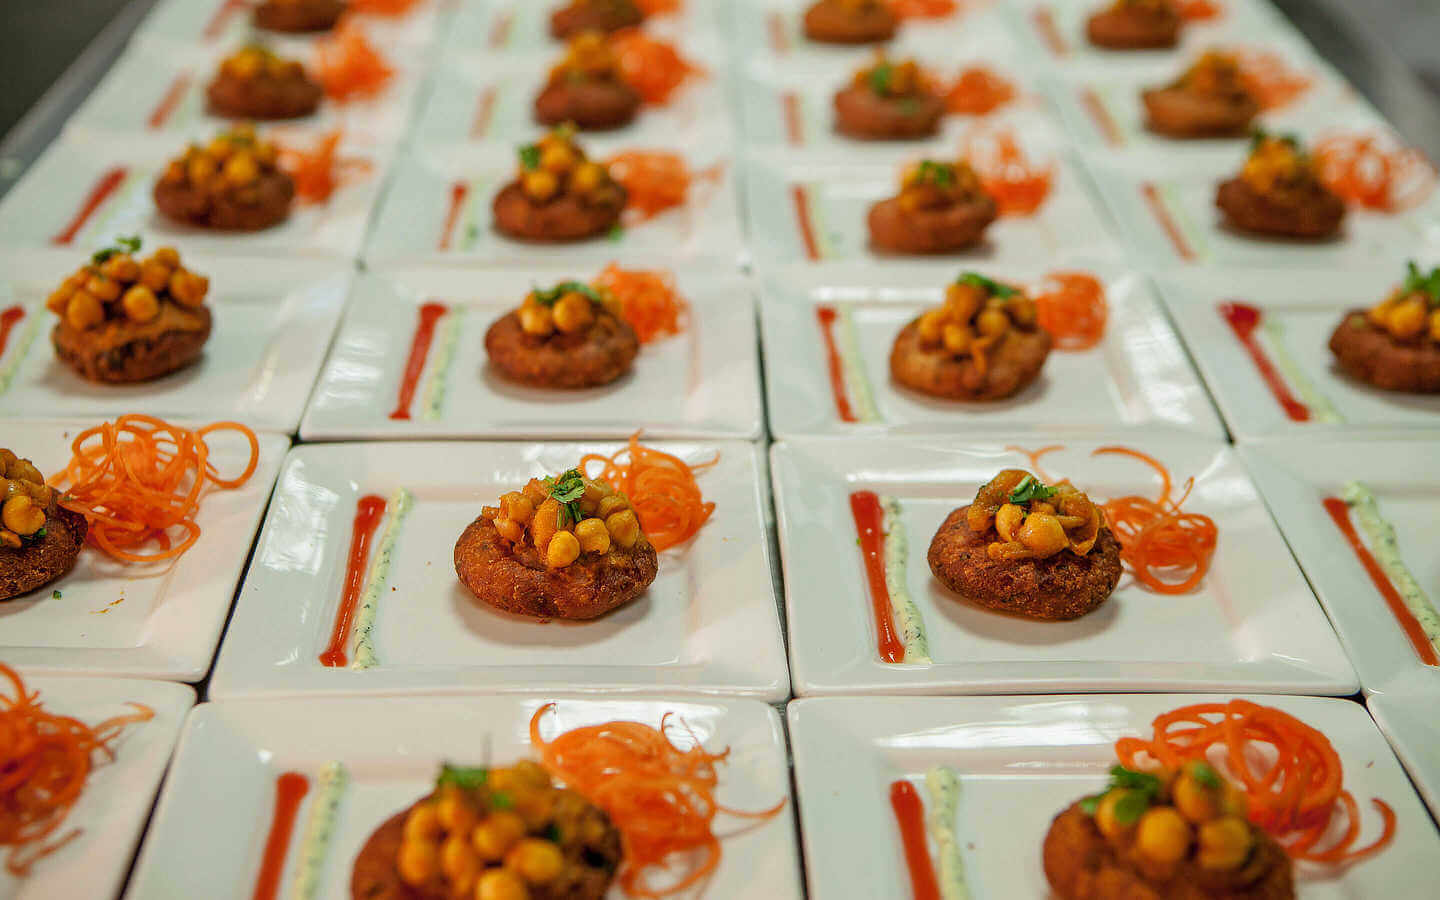 Greenleaf, Asian Wedding Caterers, Indian Wedding Catering